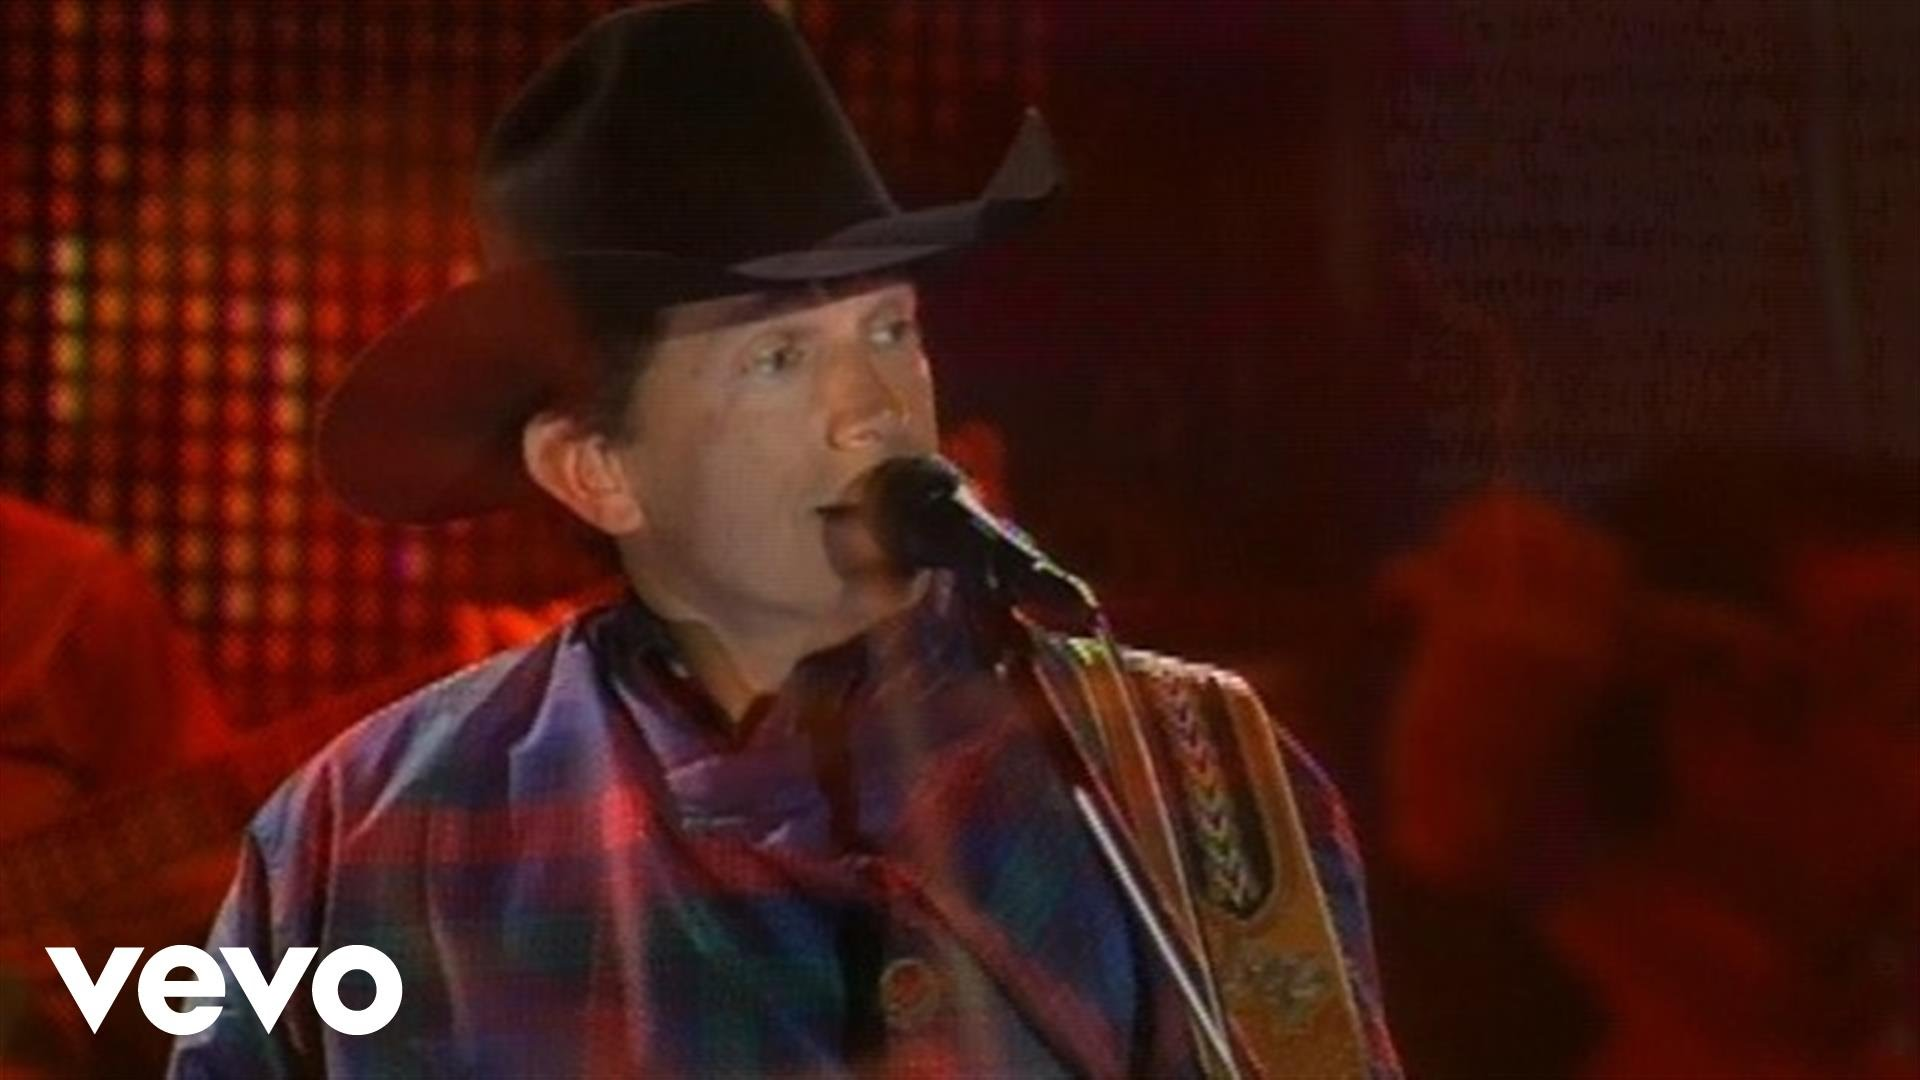 George Strait to return to Las Vegas' T-Mobile Arena for two shows in 2018